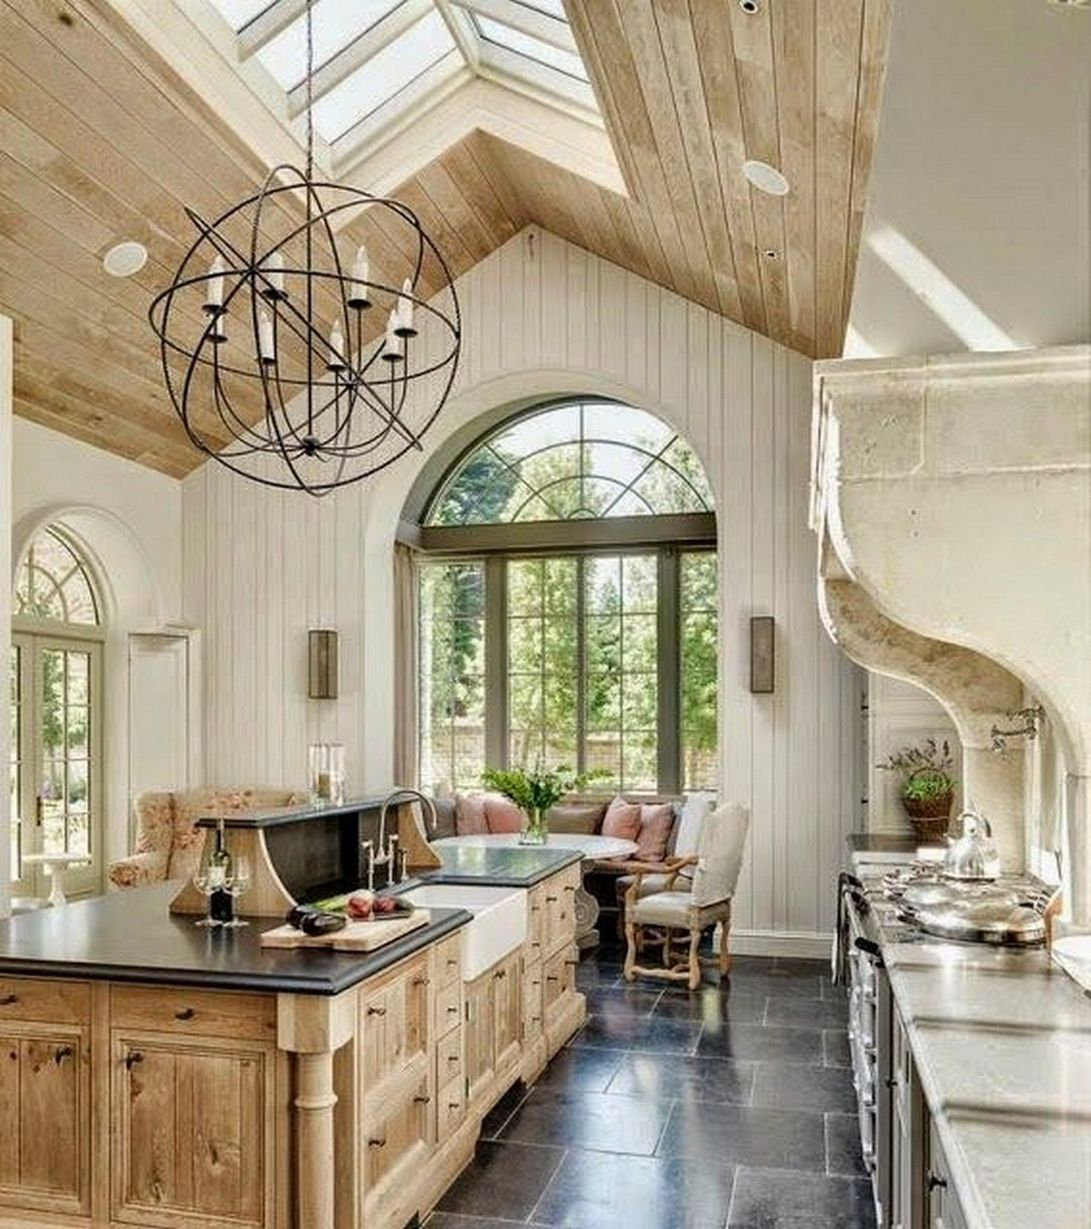 Pin By Andrea Nunley On Kitchens French Country House